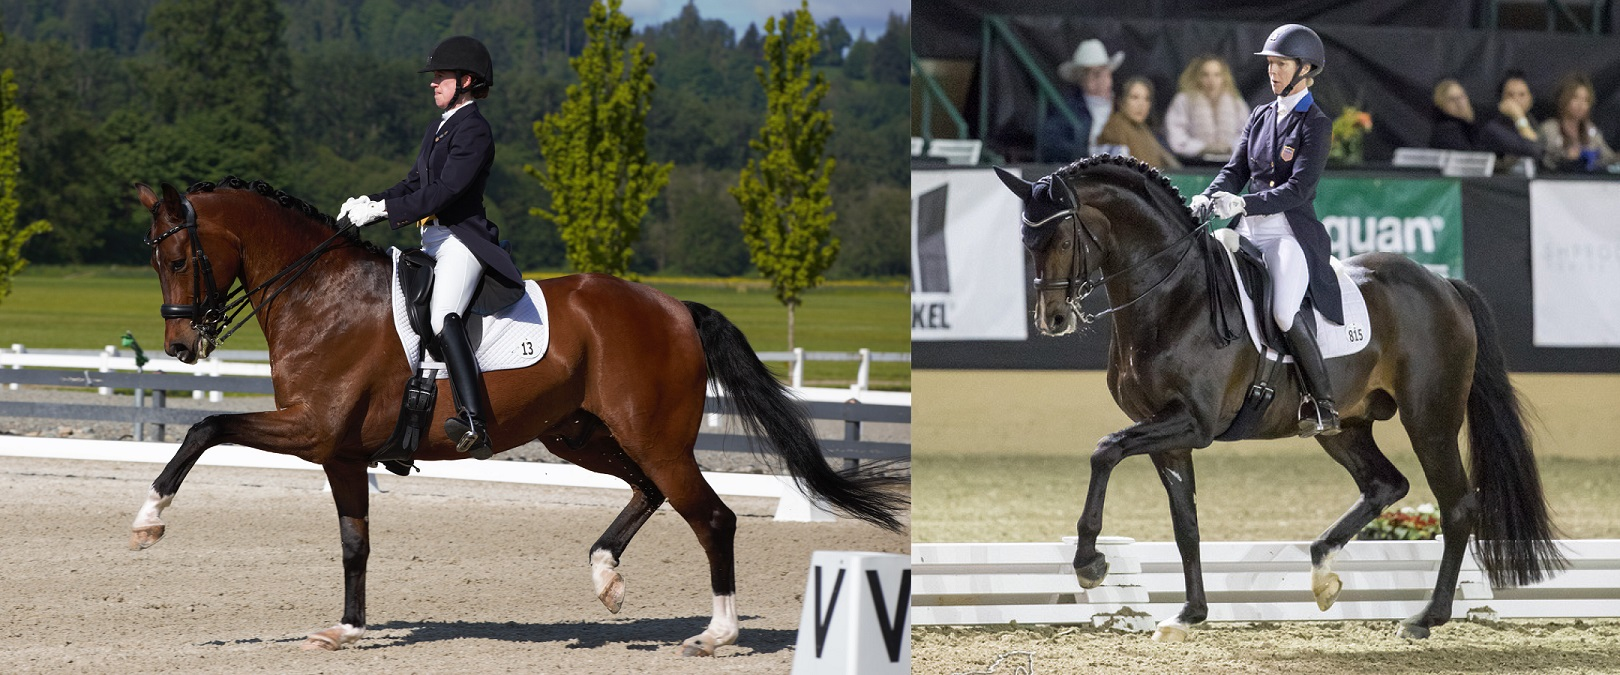 Alyssa Pitts and Sabine Schut Kery Awarded $25,000 Carol Lavell Advanced Dressage Prizes from TDF